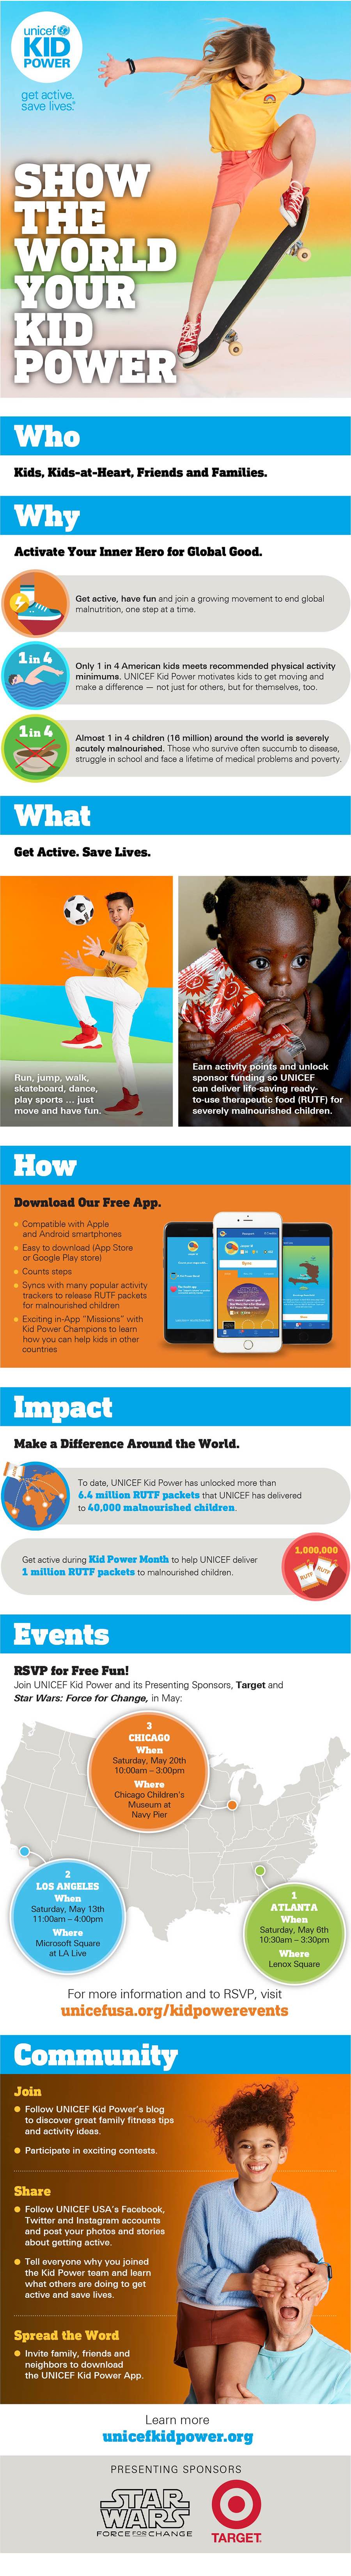 UNICEF Kid Power Month 2017 Infographic